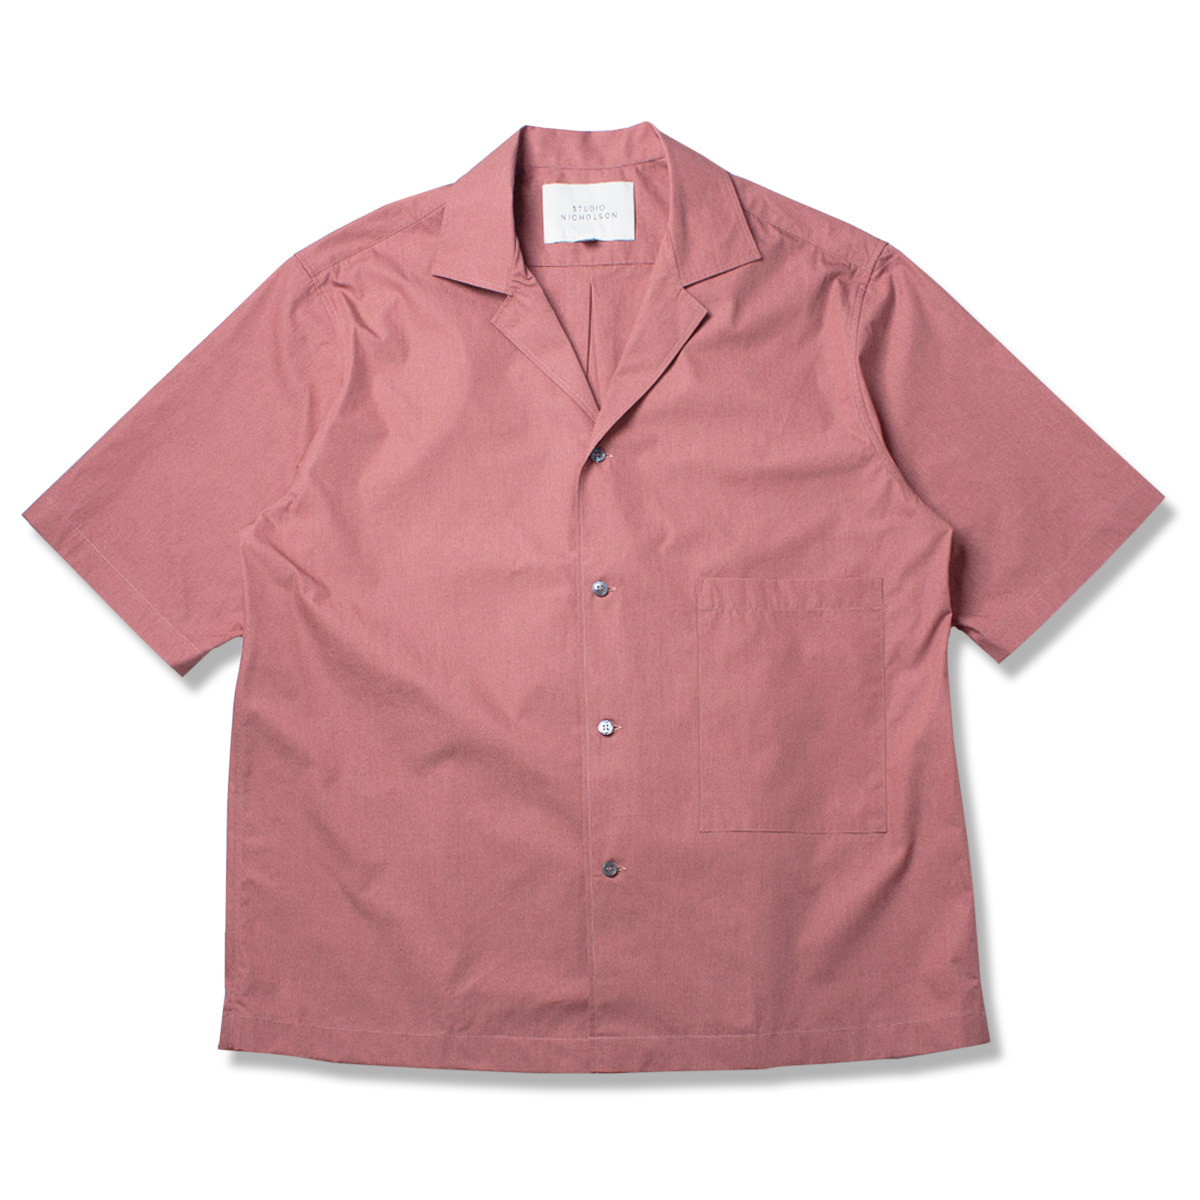 [STUDIO NICHOLSON] SHORT SLEEVE CAMP COLLAR SHIRT 'MEDINA PINK'